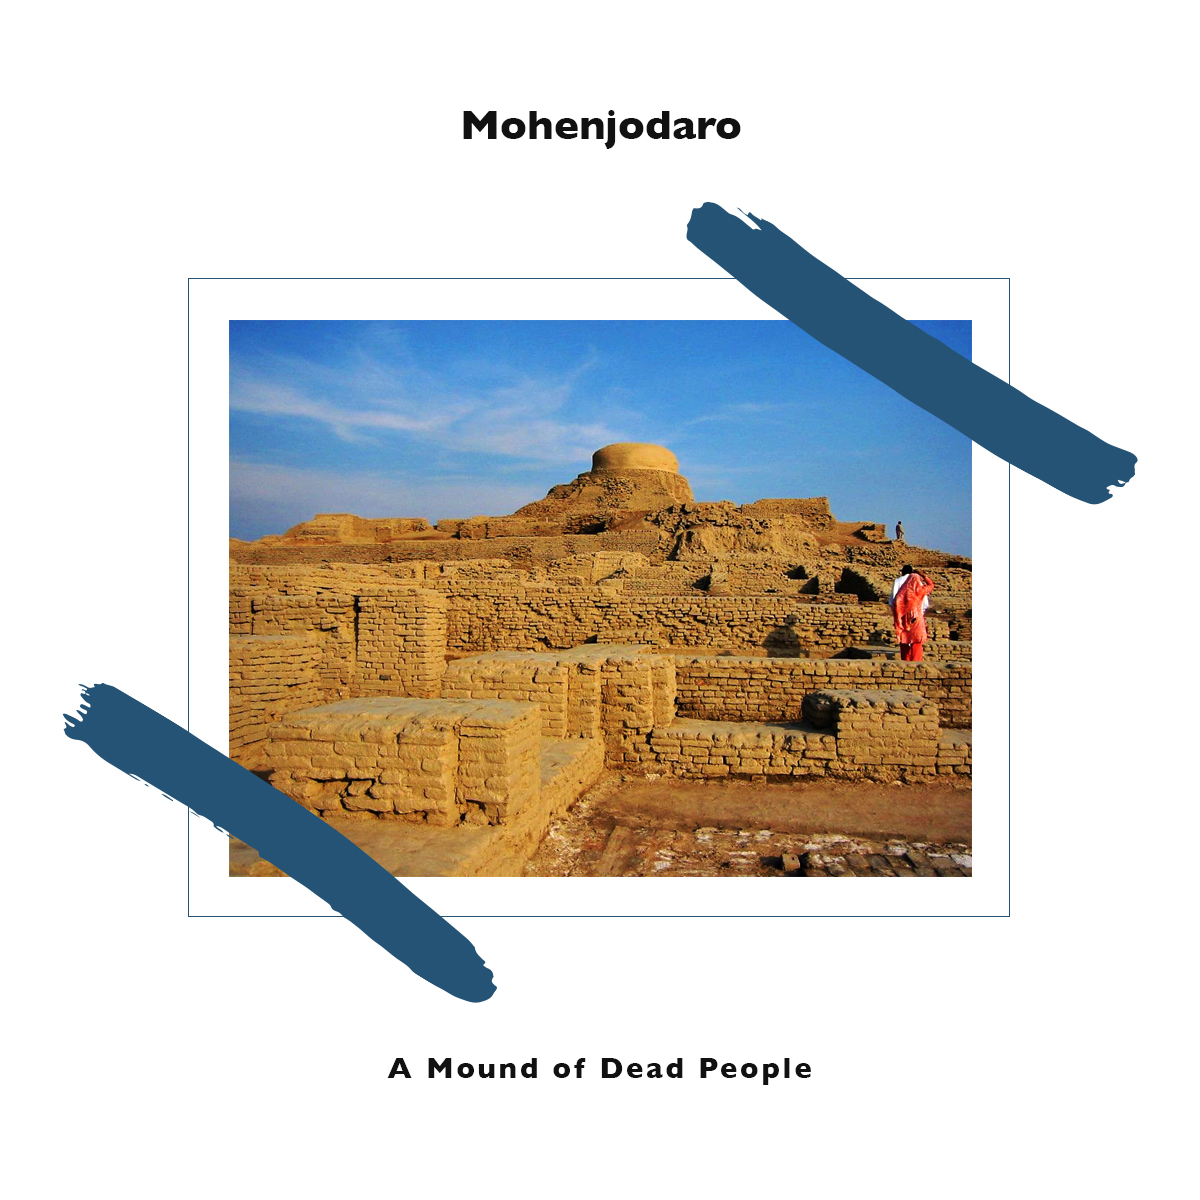 Mohenjodaro – A Mound of Dead People